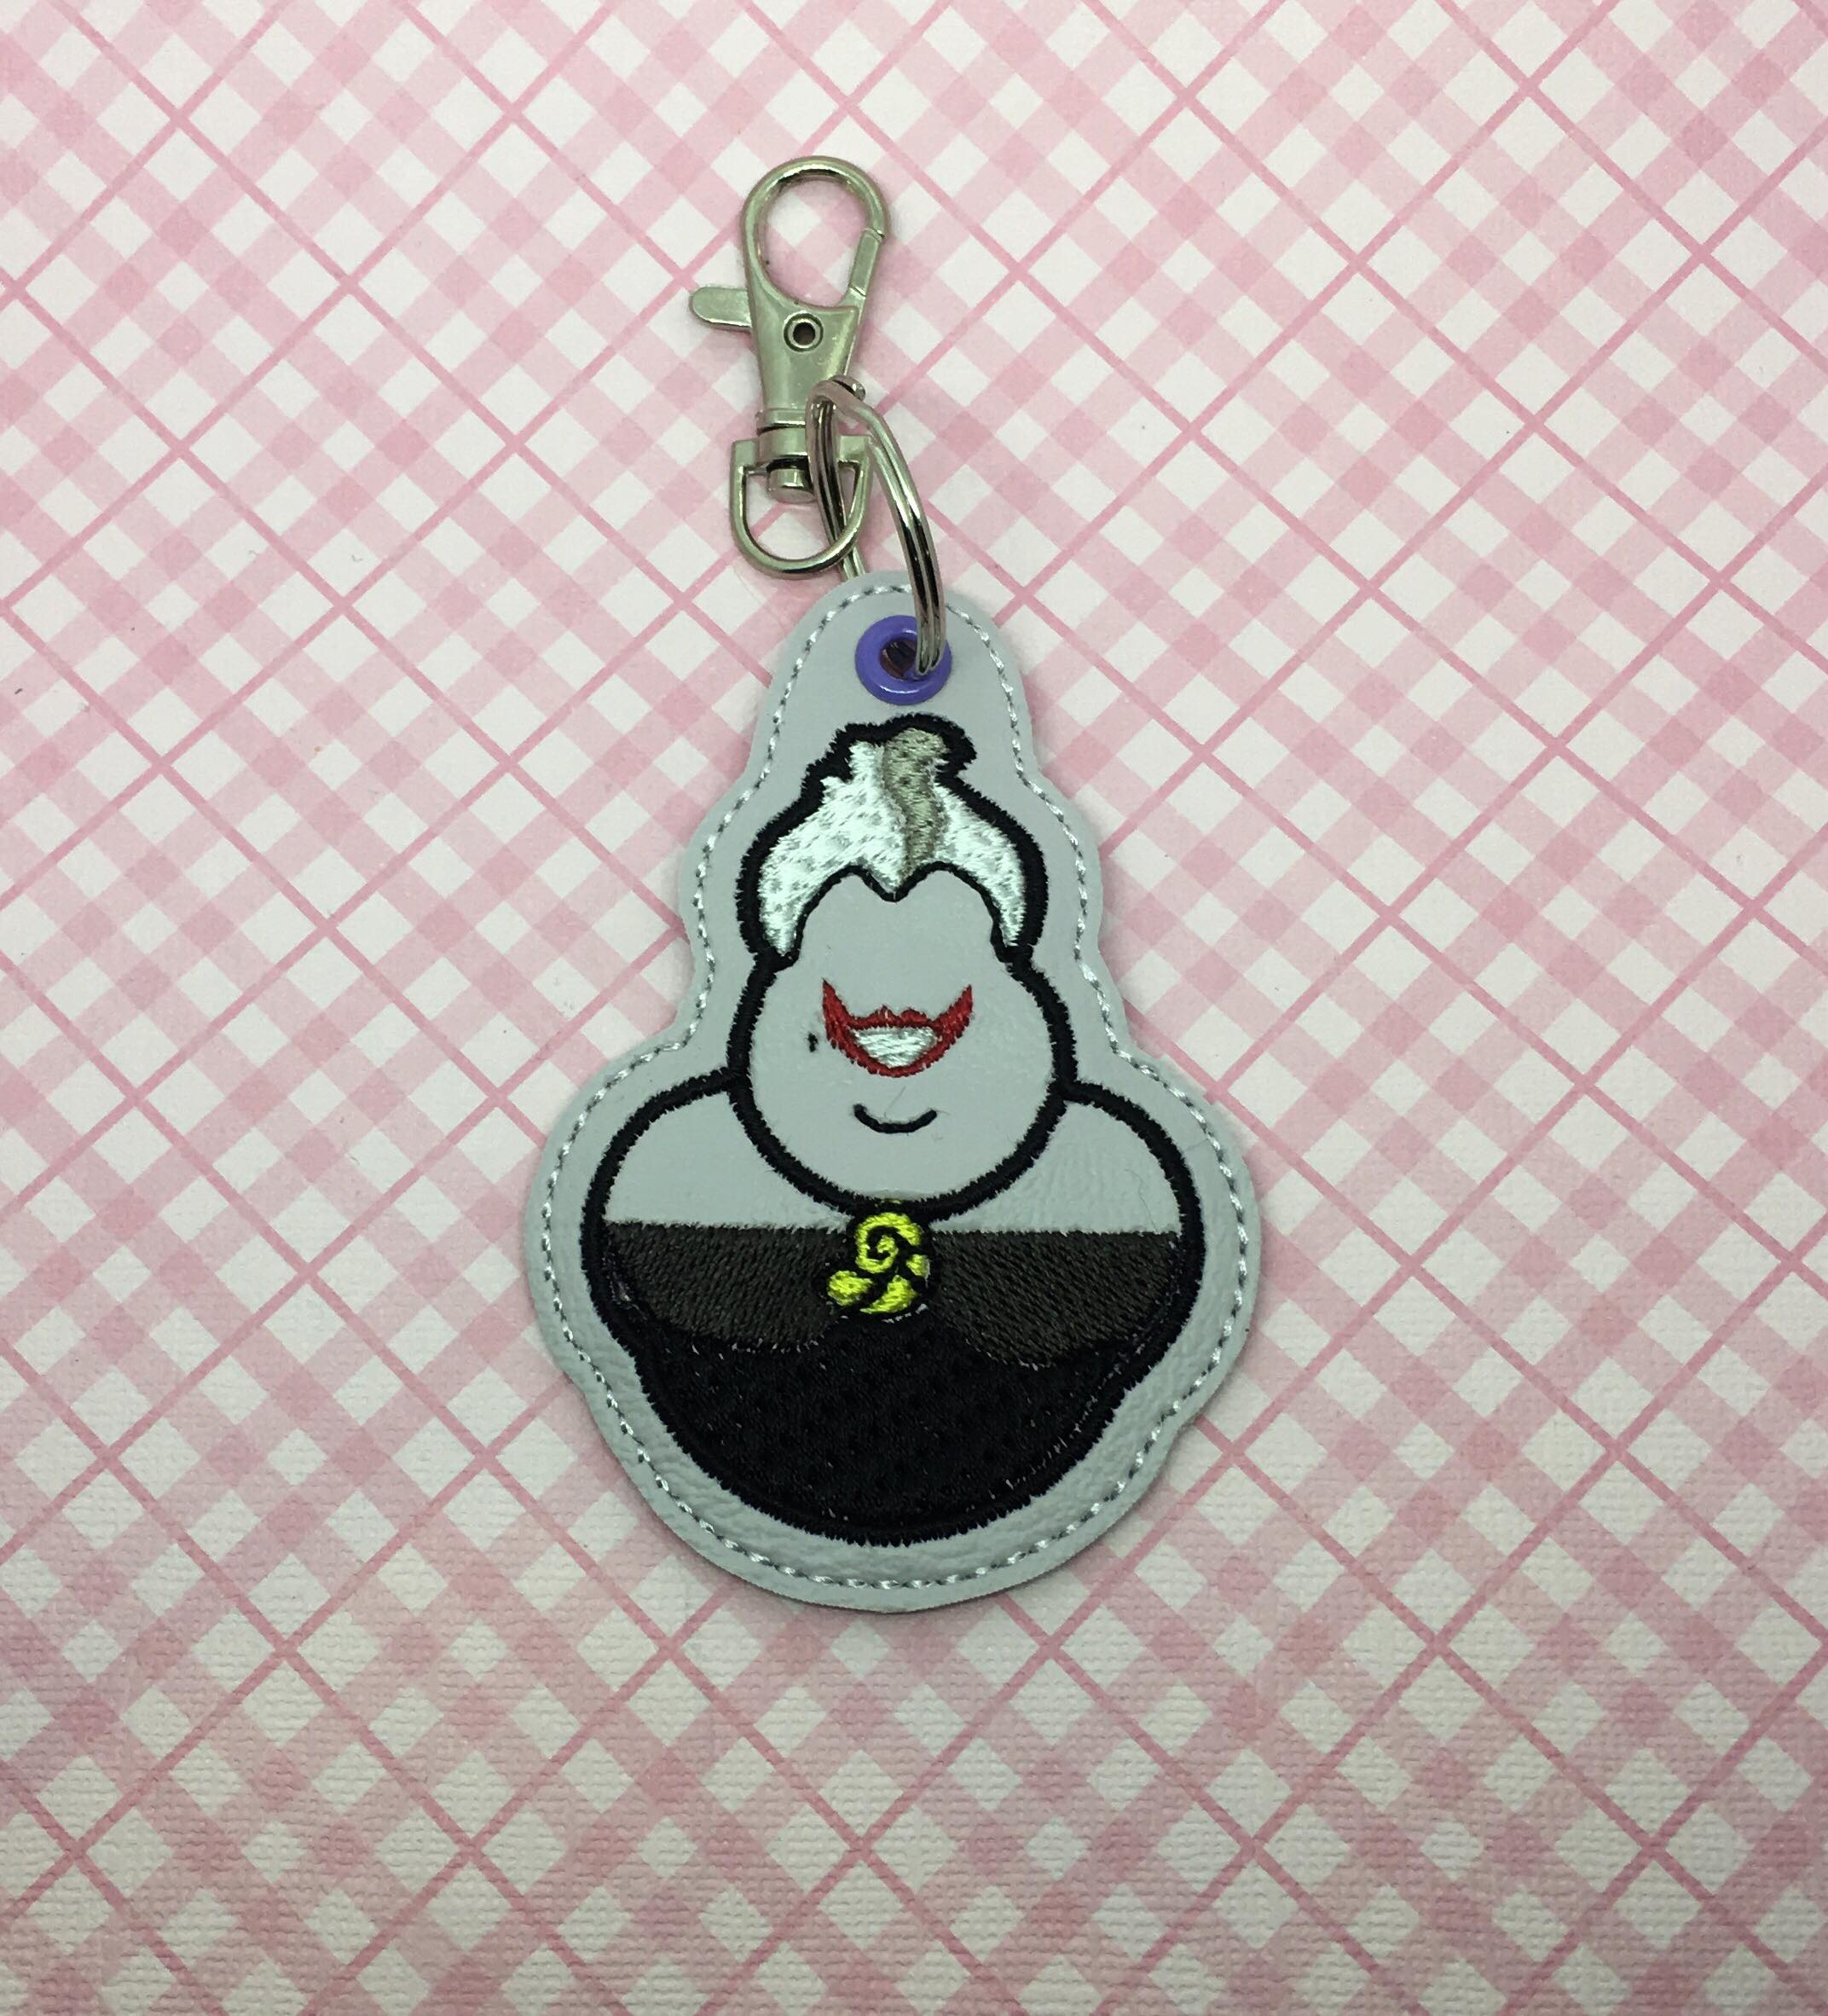 Sea Witch Villain Snaptab / Keyfob Embroidery Design